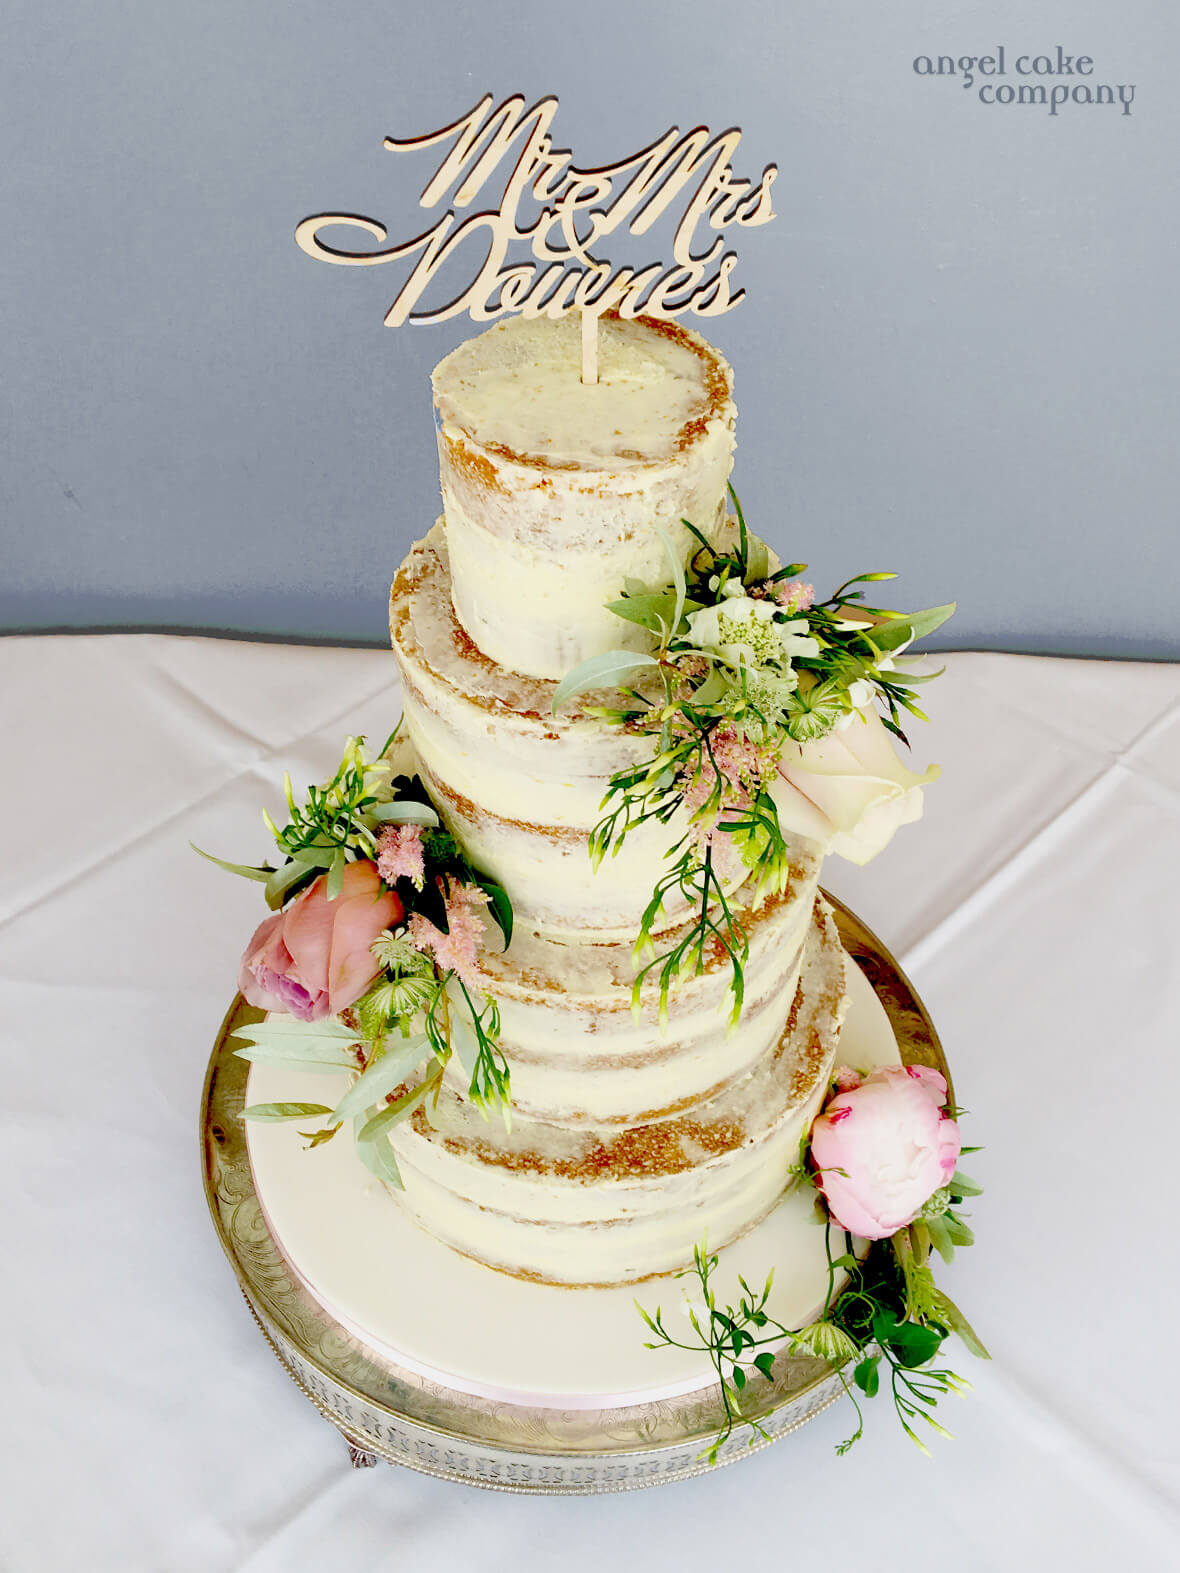 Angel Cake Company | Wedding Cake Gallery